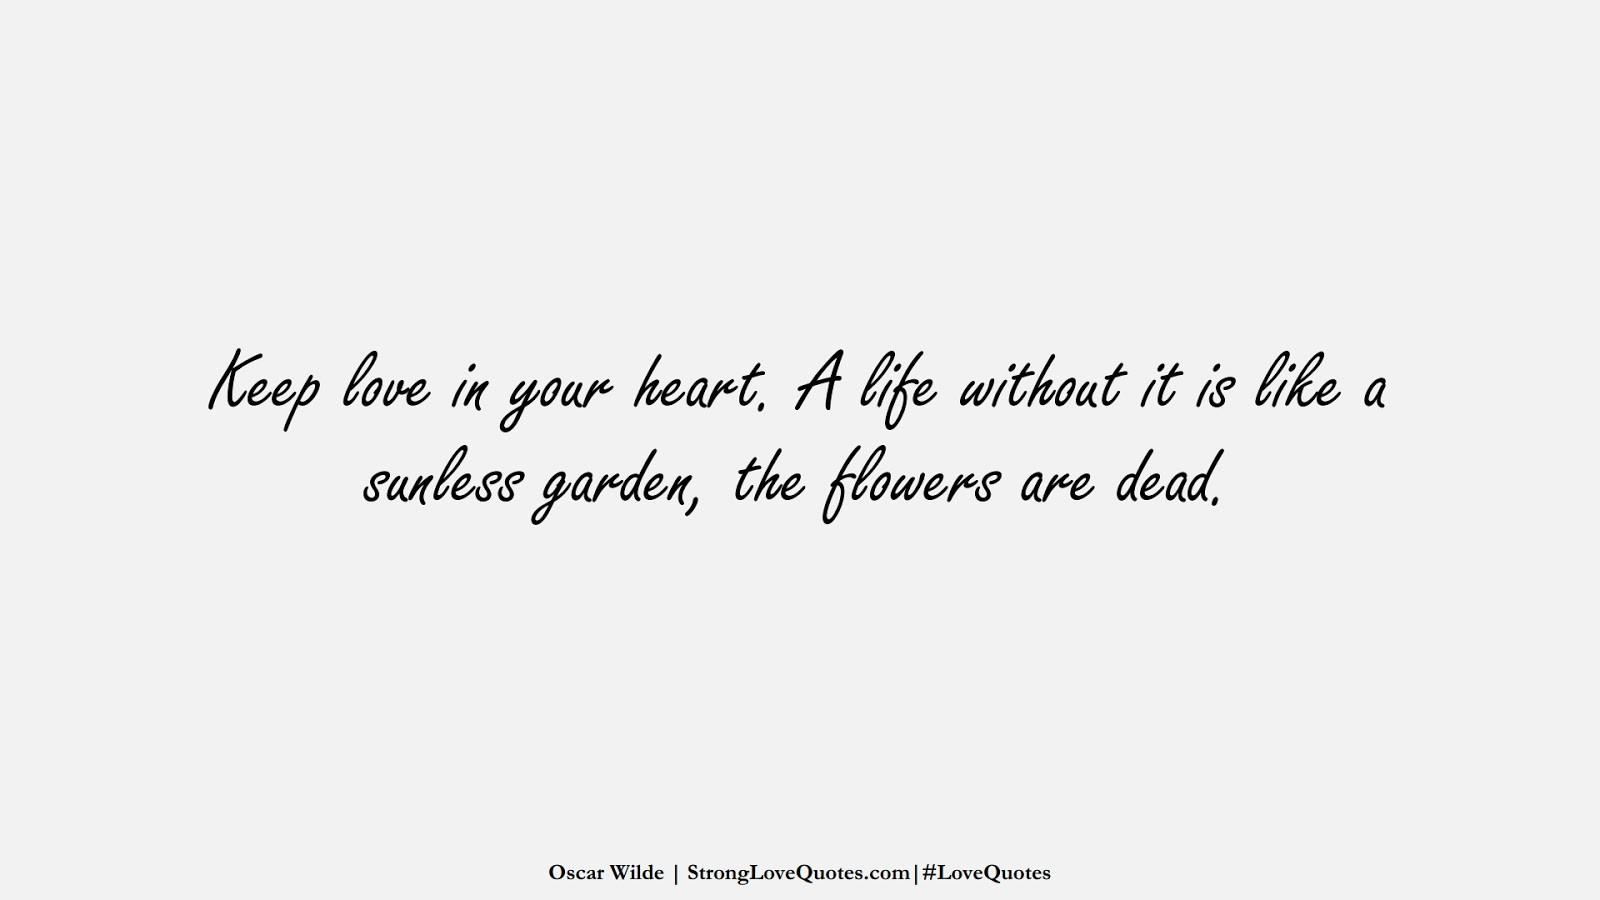 Keep love in your heart. A life without it is like a sunless garden, the flowers are dead. (Oscar Wilde);  #LoveQuotes